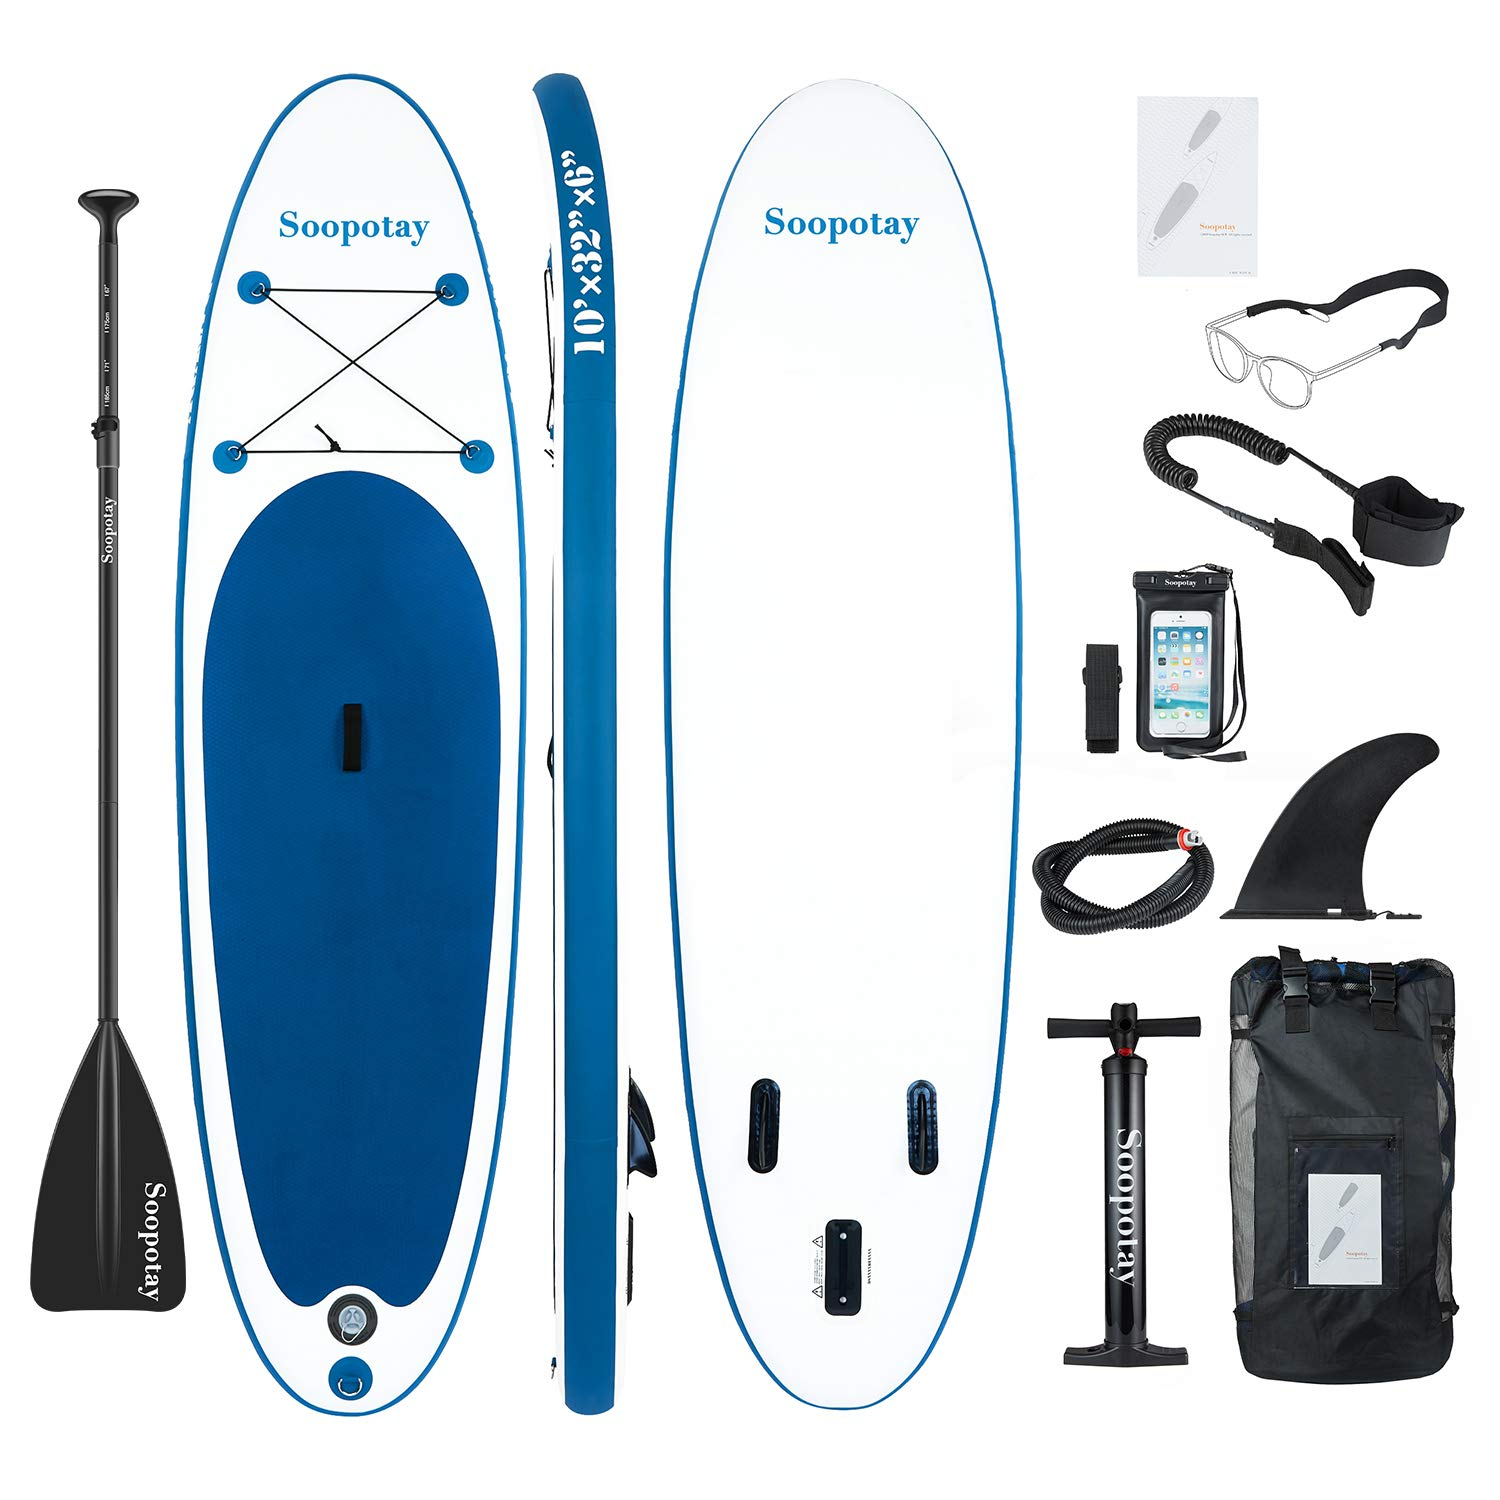 Inflatable SUP Stand Up Paddle Board, Inflatable SUP Board, iSUP Package with All Accessories (All Round Primary-Navy Blue-10' x 32'' x 6'') by Soopotay (Image #1)